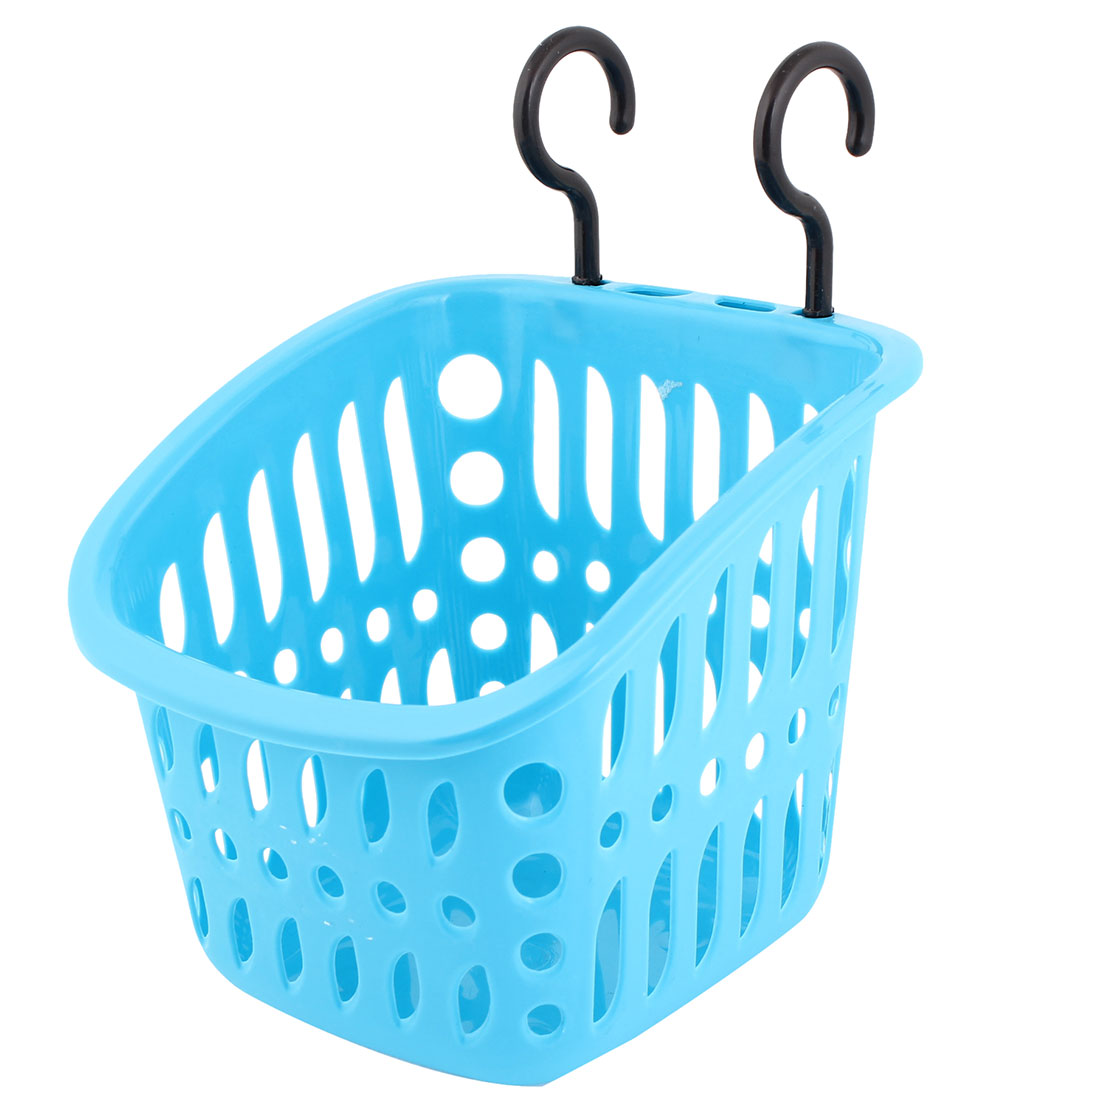 Kitchenware Bathroom Blue Plastic Basket Holder w Hooks